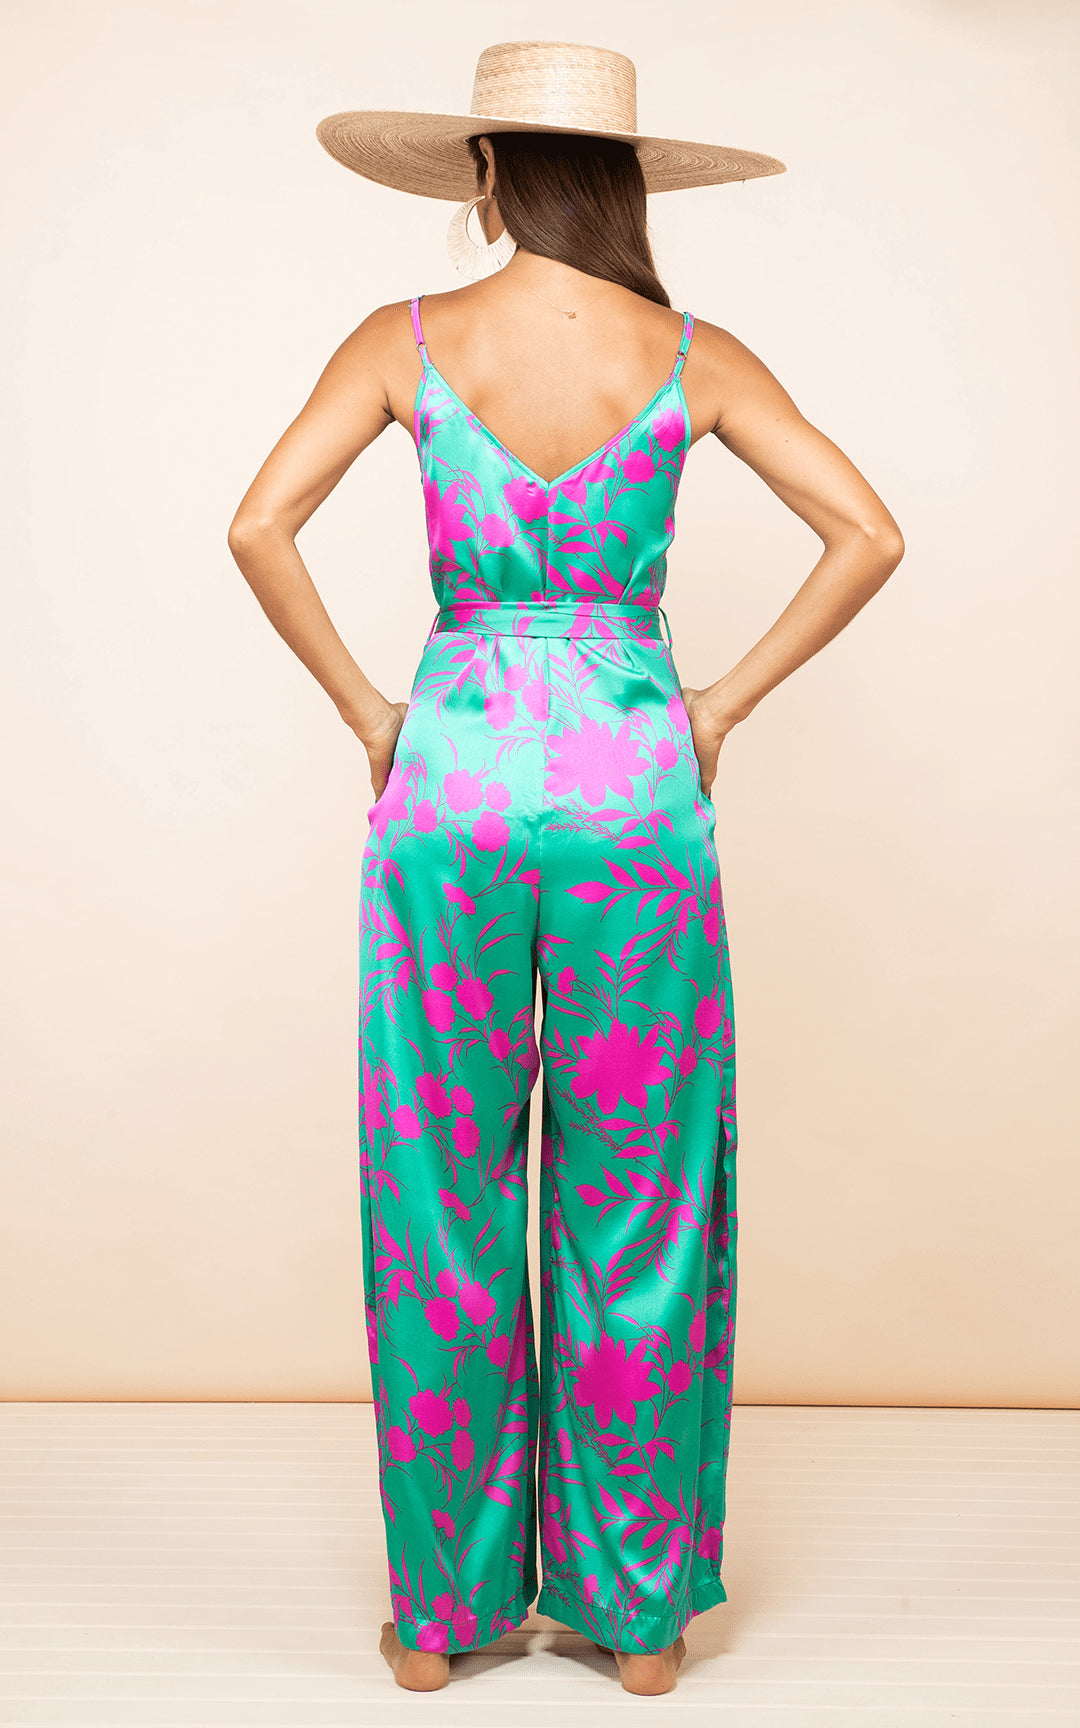 Dancing leopard model wears Gabriella Jumpsuit Silhouette Pink on Green facing the back with hands in pockets